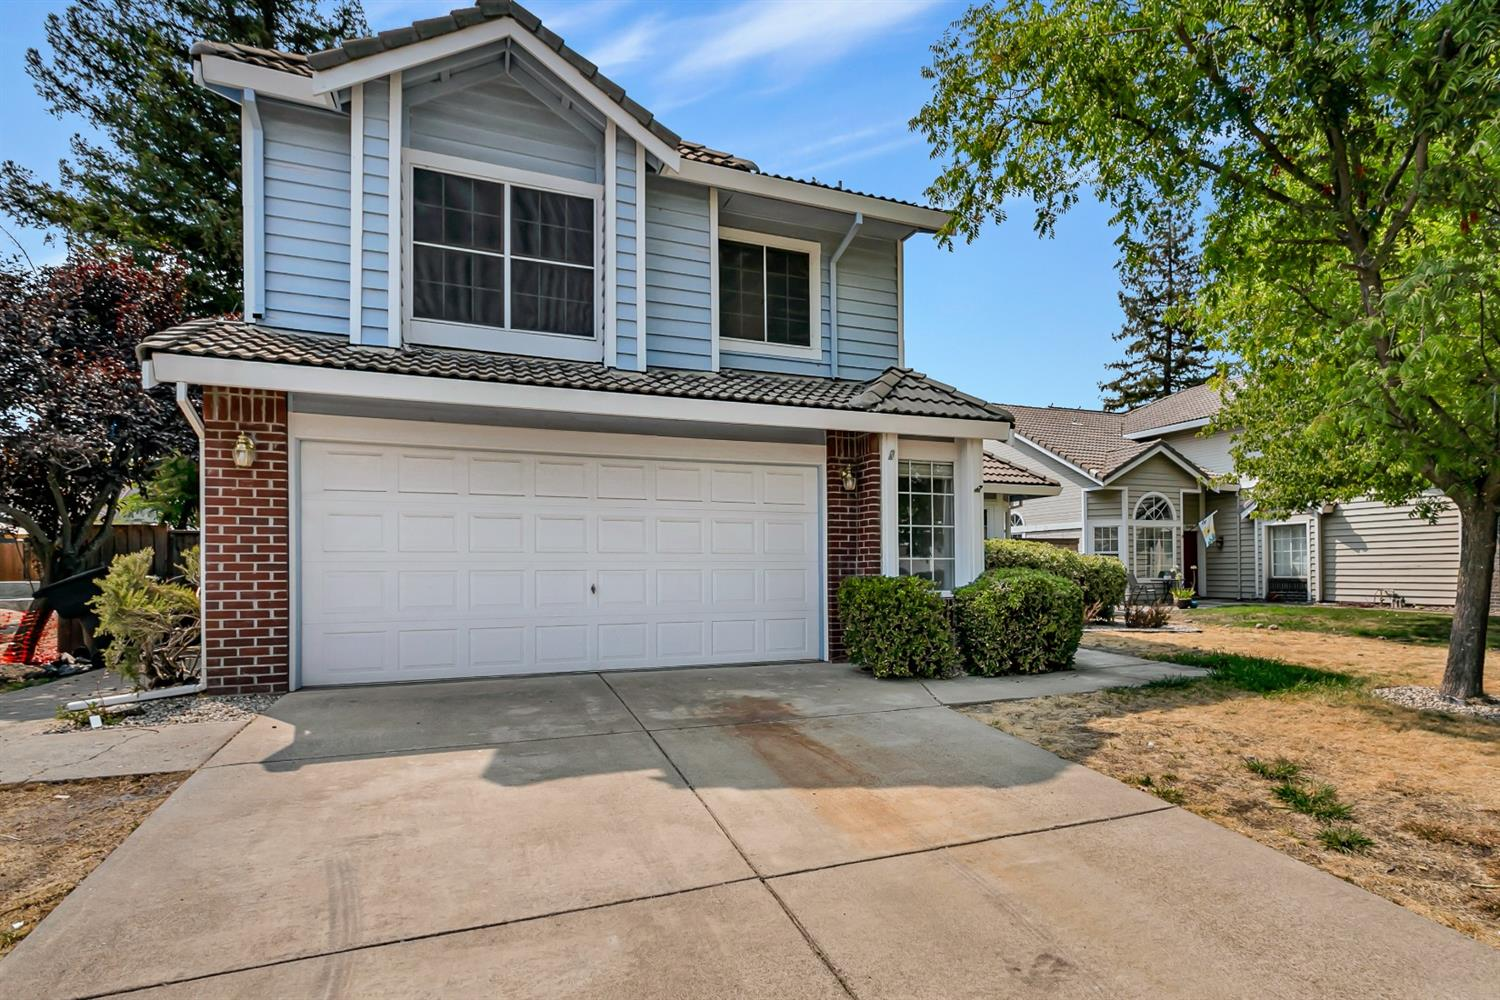 Photo 3 for Listing #221084351